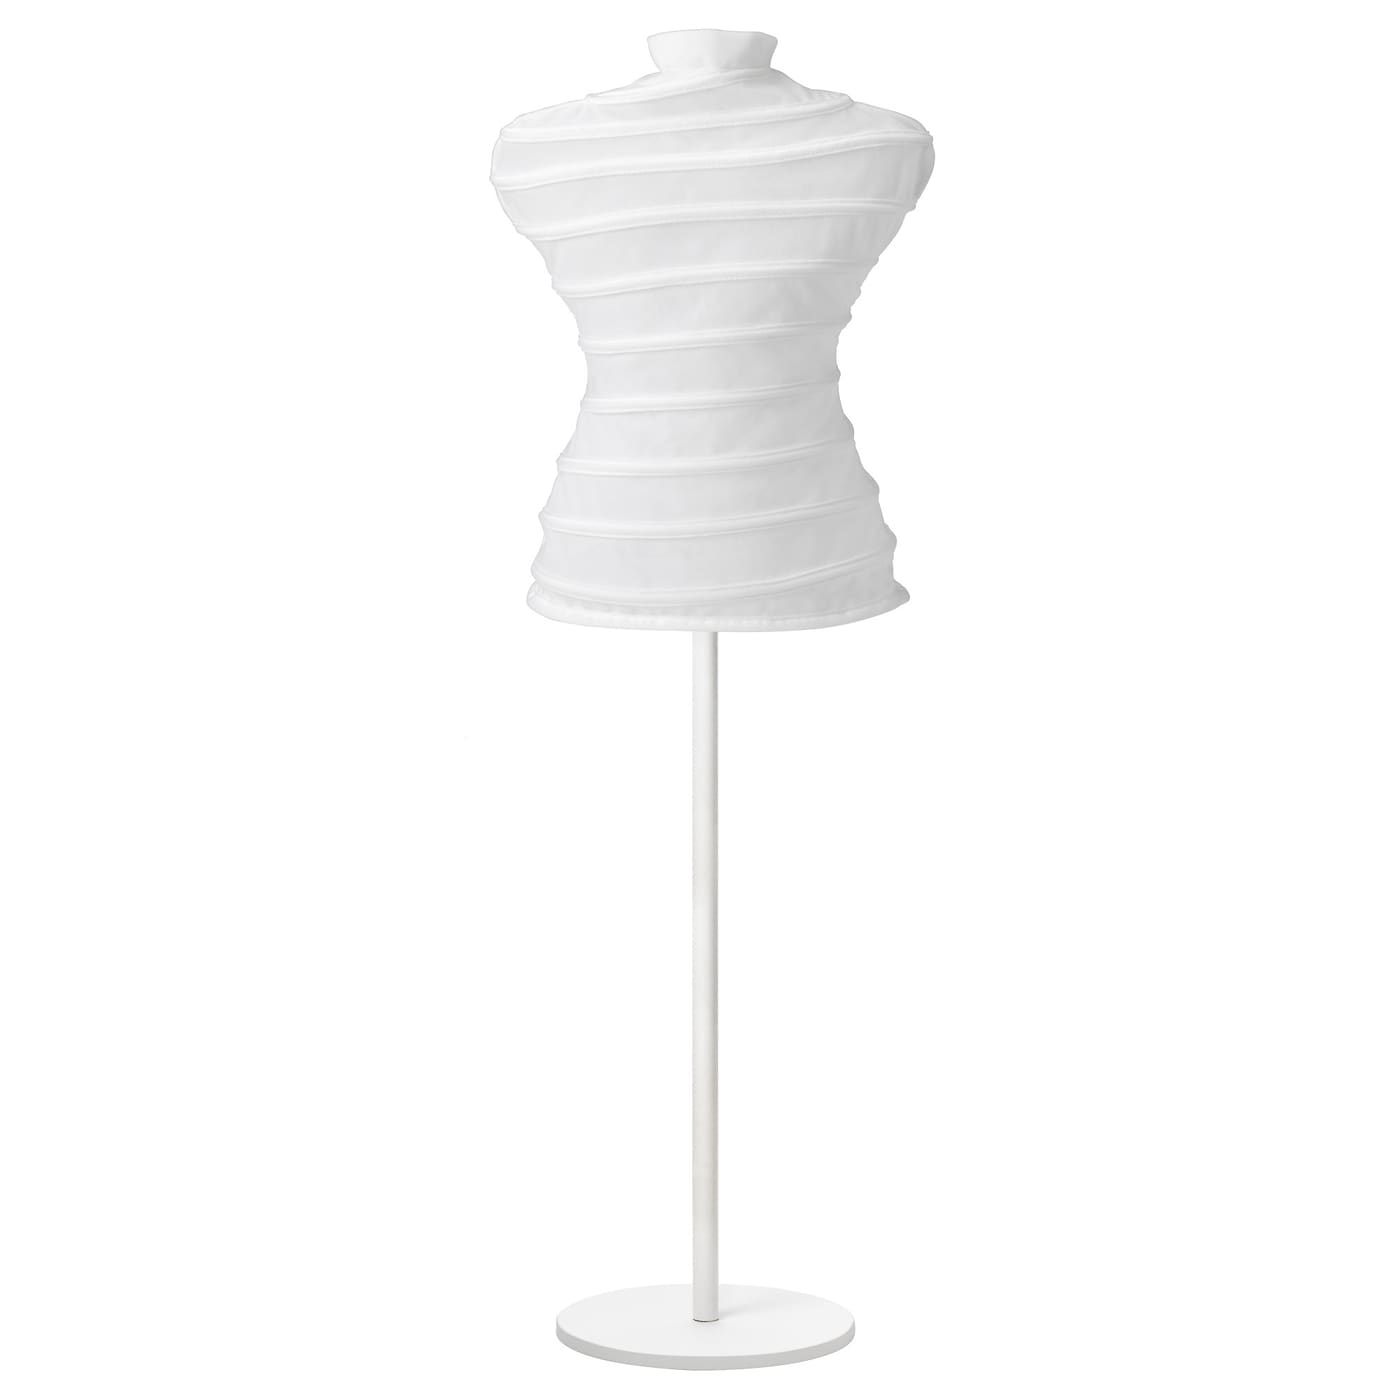 IKEA NÄPEN clothes stand with cover